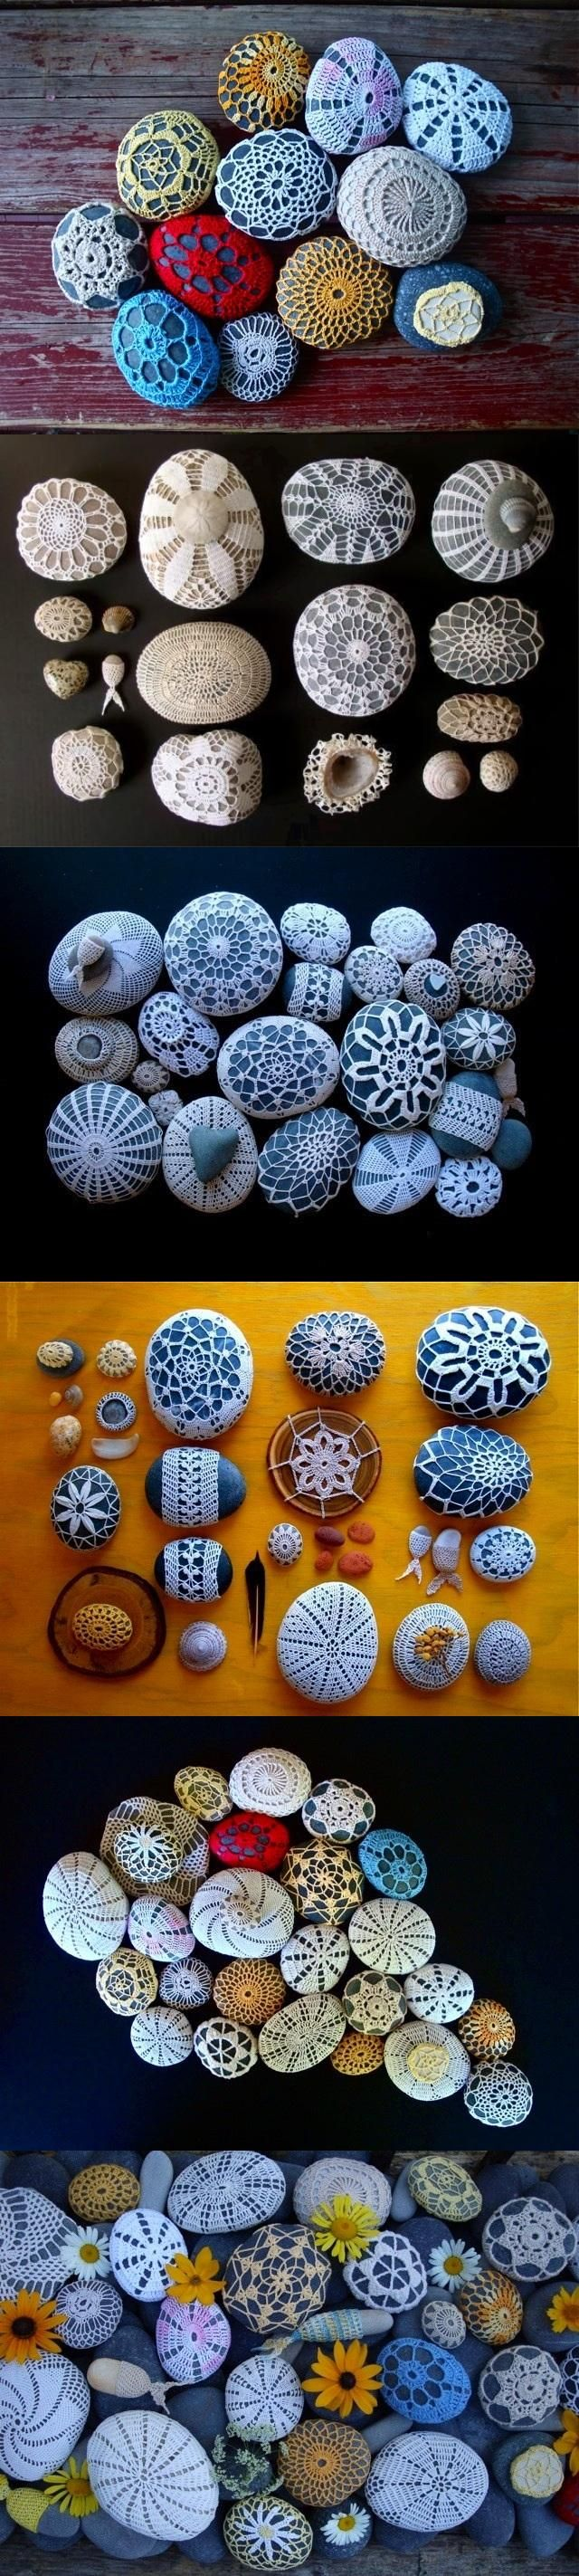 Crochet doily rock, stone covers. Inspiration.